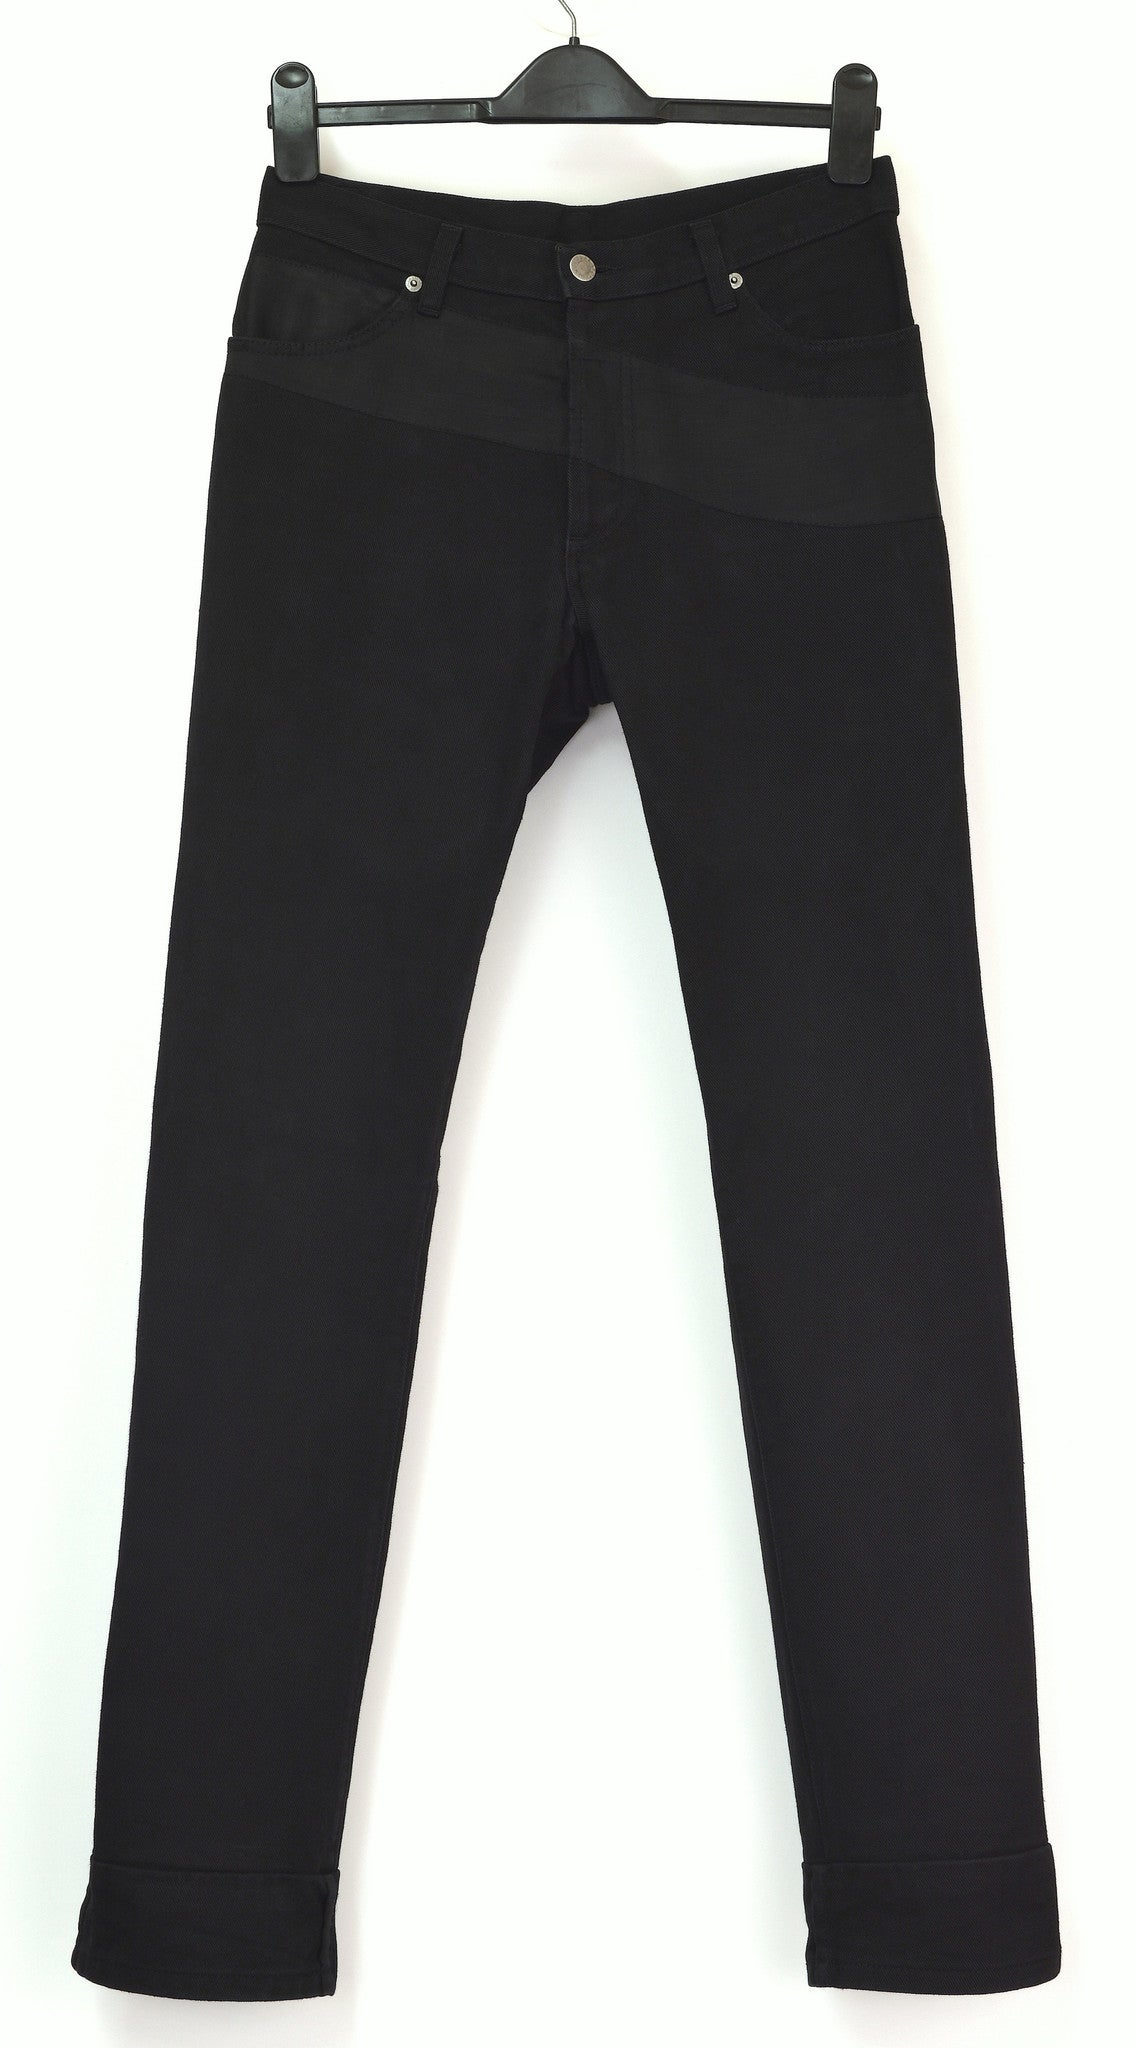 1997 Slim Thigh Pocket Jeans with Silk Application